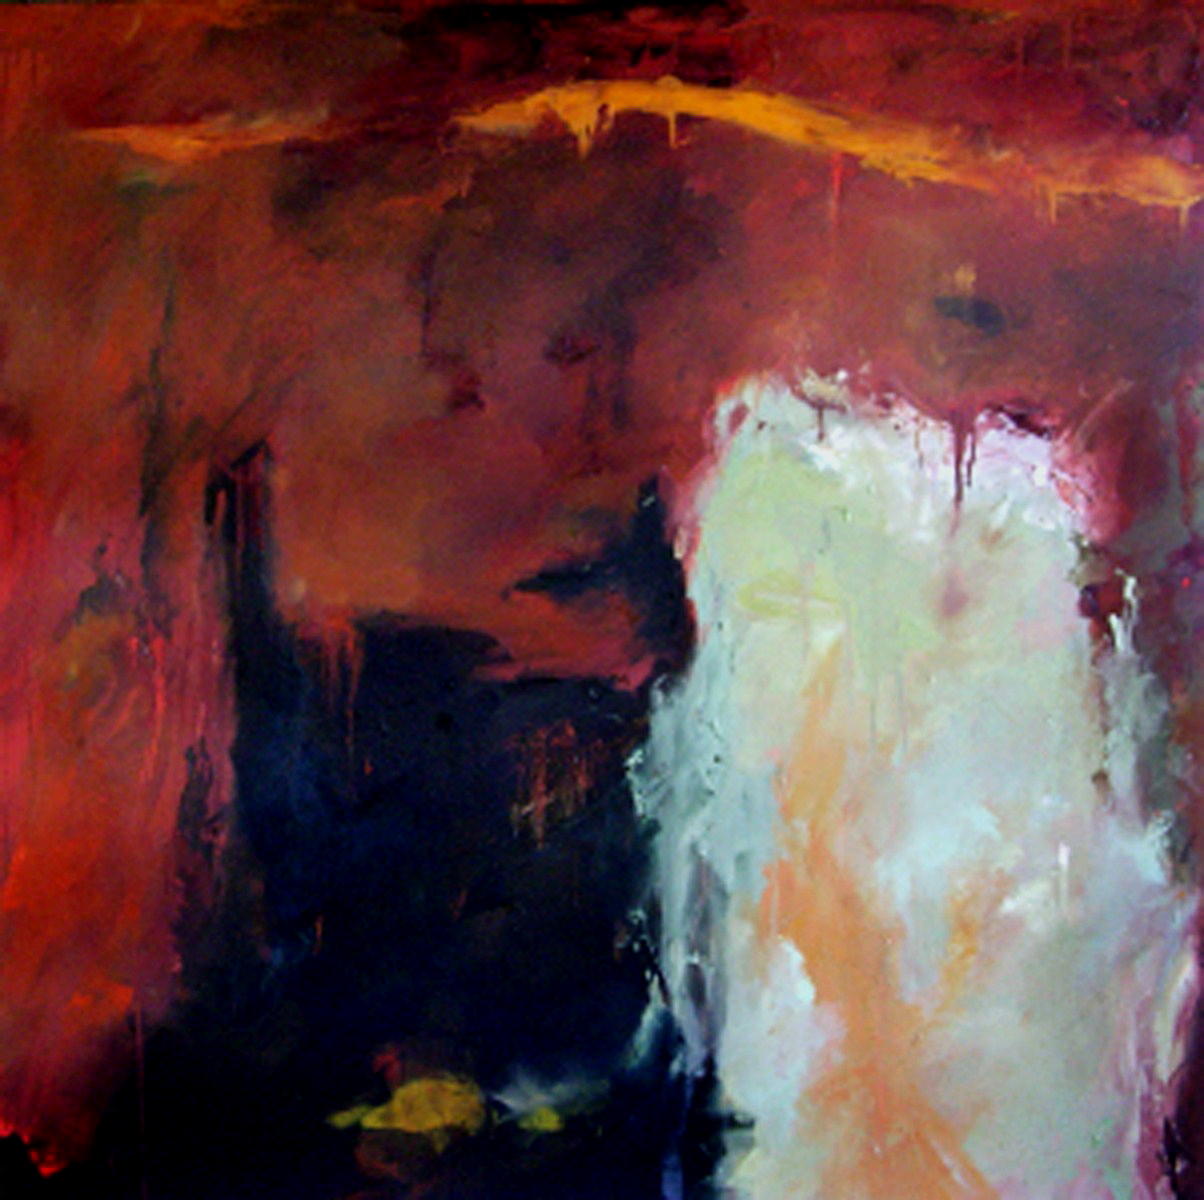 "And There Is Light  , 2003, oil on canvas, 54 x 54""  At times, it is easy for us to succumb to the negativity that the world may suggest, whether it be through circumstance, through the action of others, or through our own insecurities.   This painting is an illustration of the two worlds in which we may choose to live. Two houses stand side by side in the glowing light of dusk. One house is dark, rooted in fear, doubt, and complacency. The other is built on the foundation of hope, illuminated by knowledge, faith, and confidence. A reminder that Light can penetrate even the darkest places."